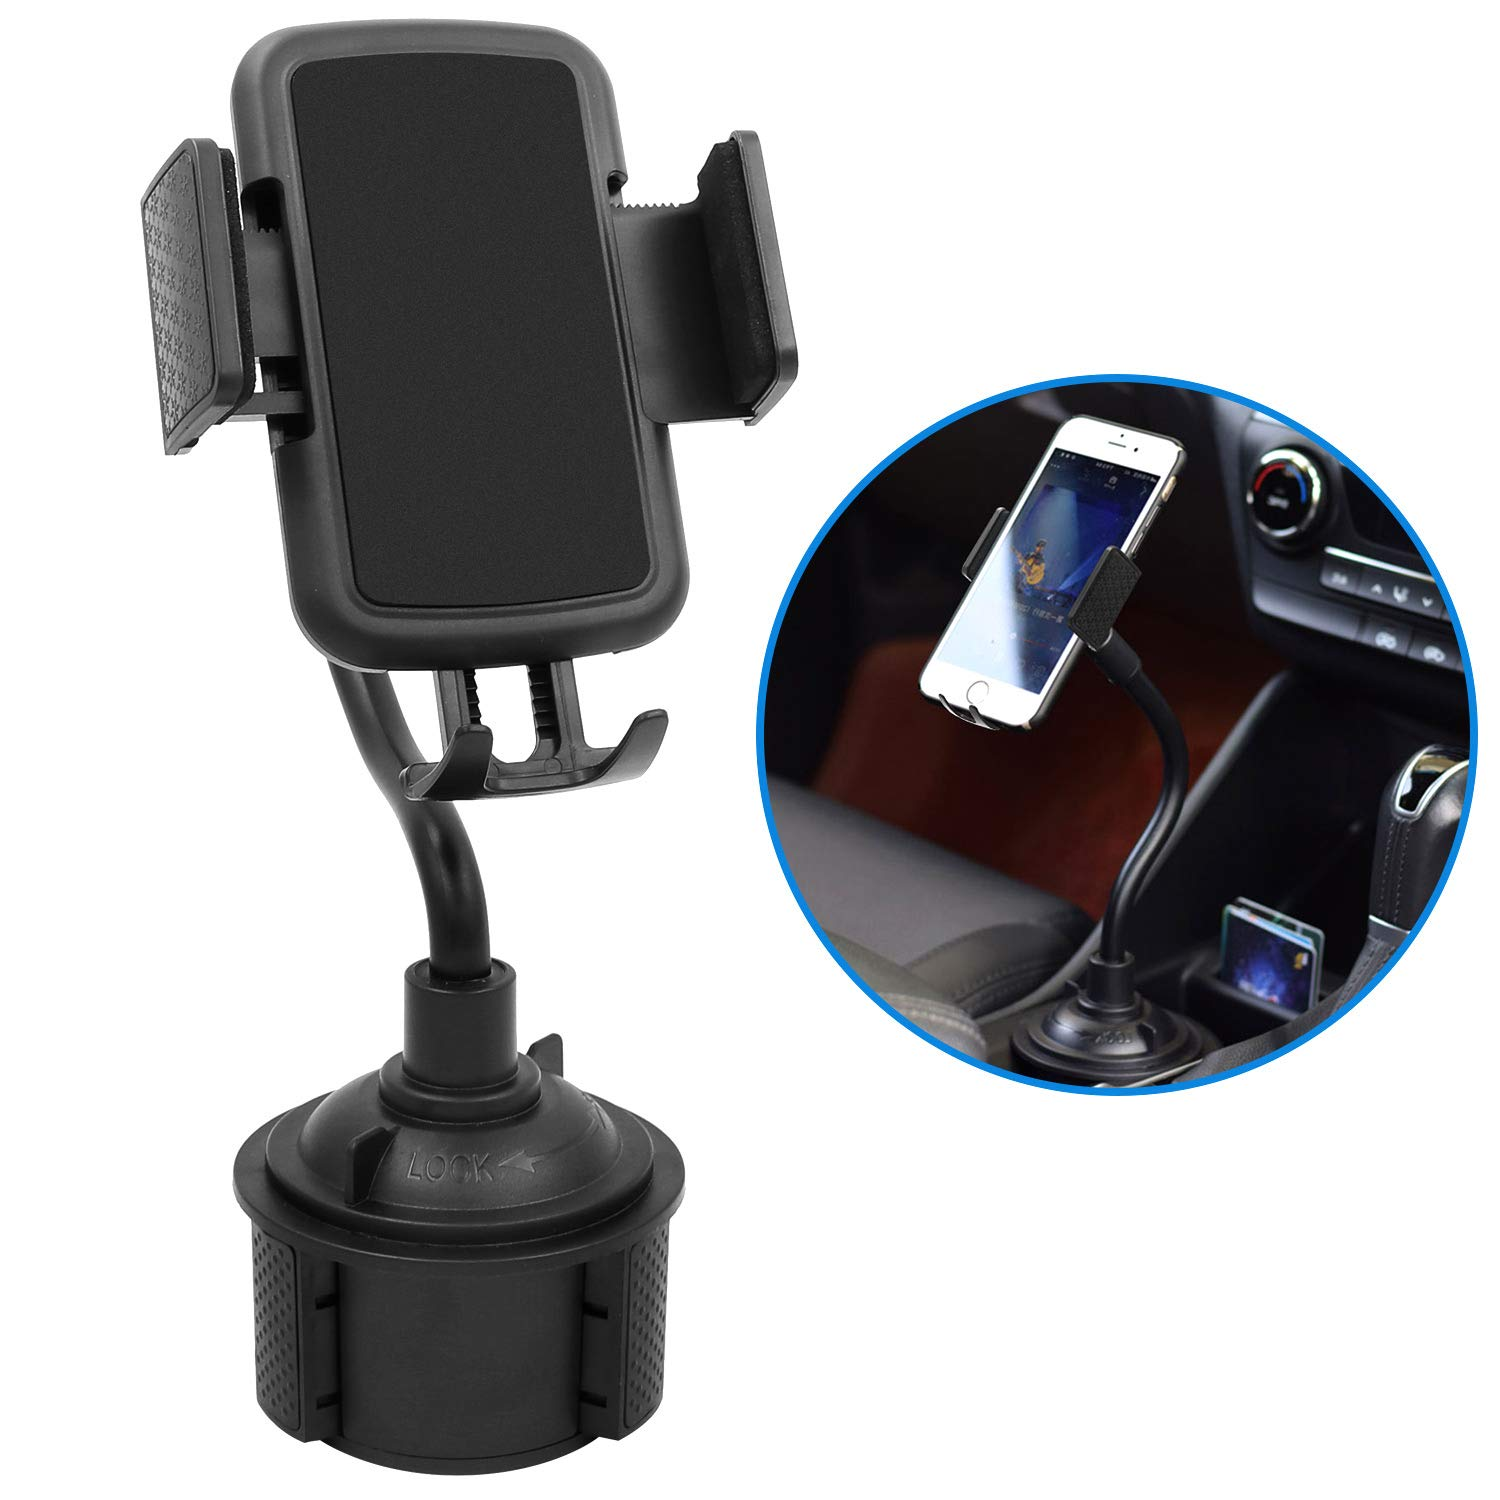 Car Cup Holder Phone Mount Adjustable Portable Gooseneck car Phone Holder for iPhone Xs/Max/X/XR/8/8 Plus,Samsung Note 9/ S10+/ S9/ S9+/ S8 by TDTOK